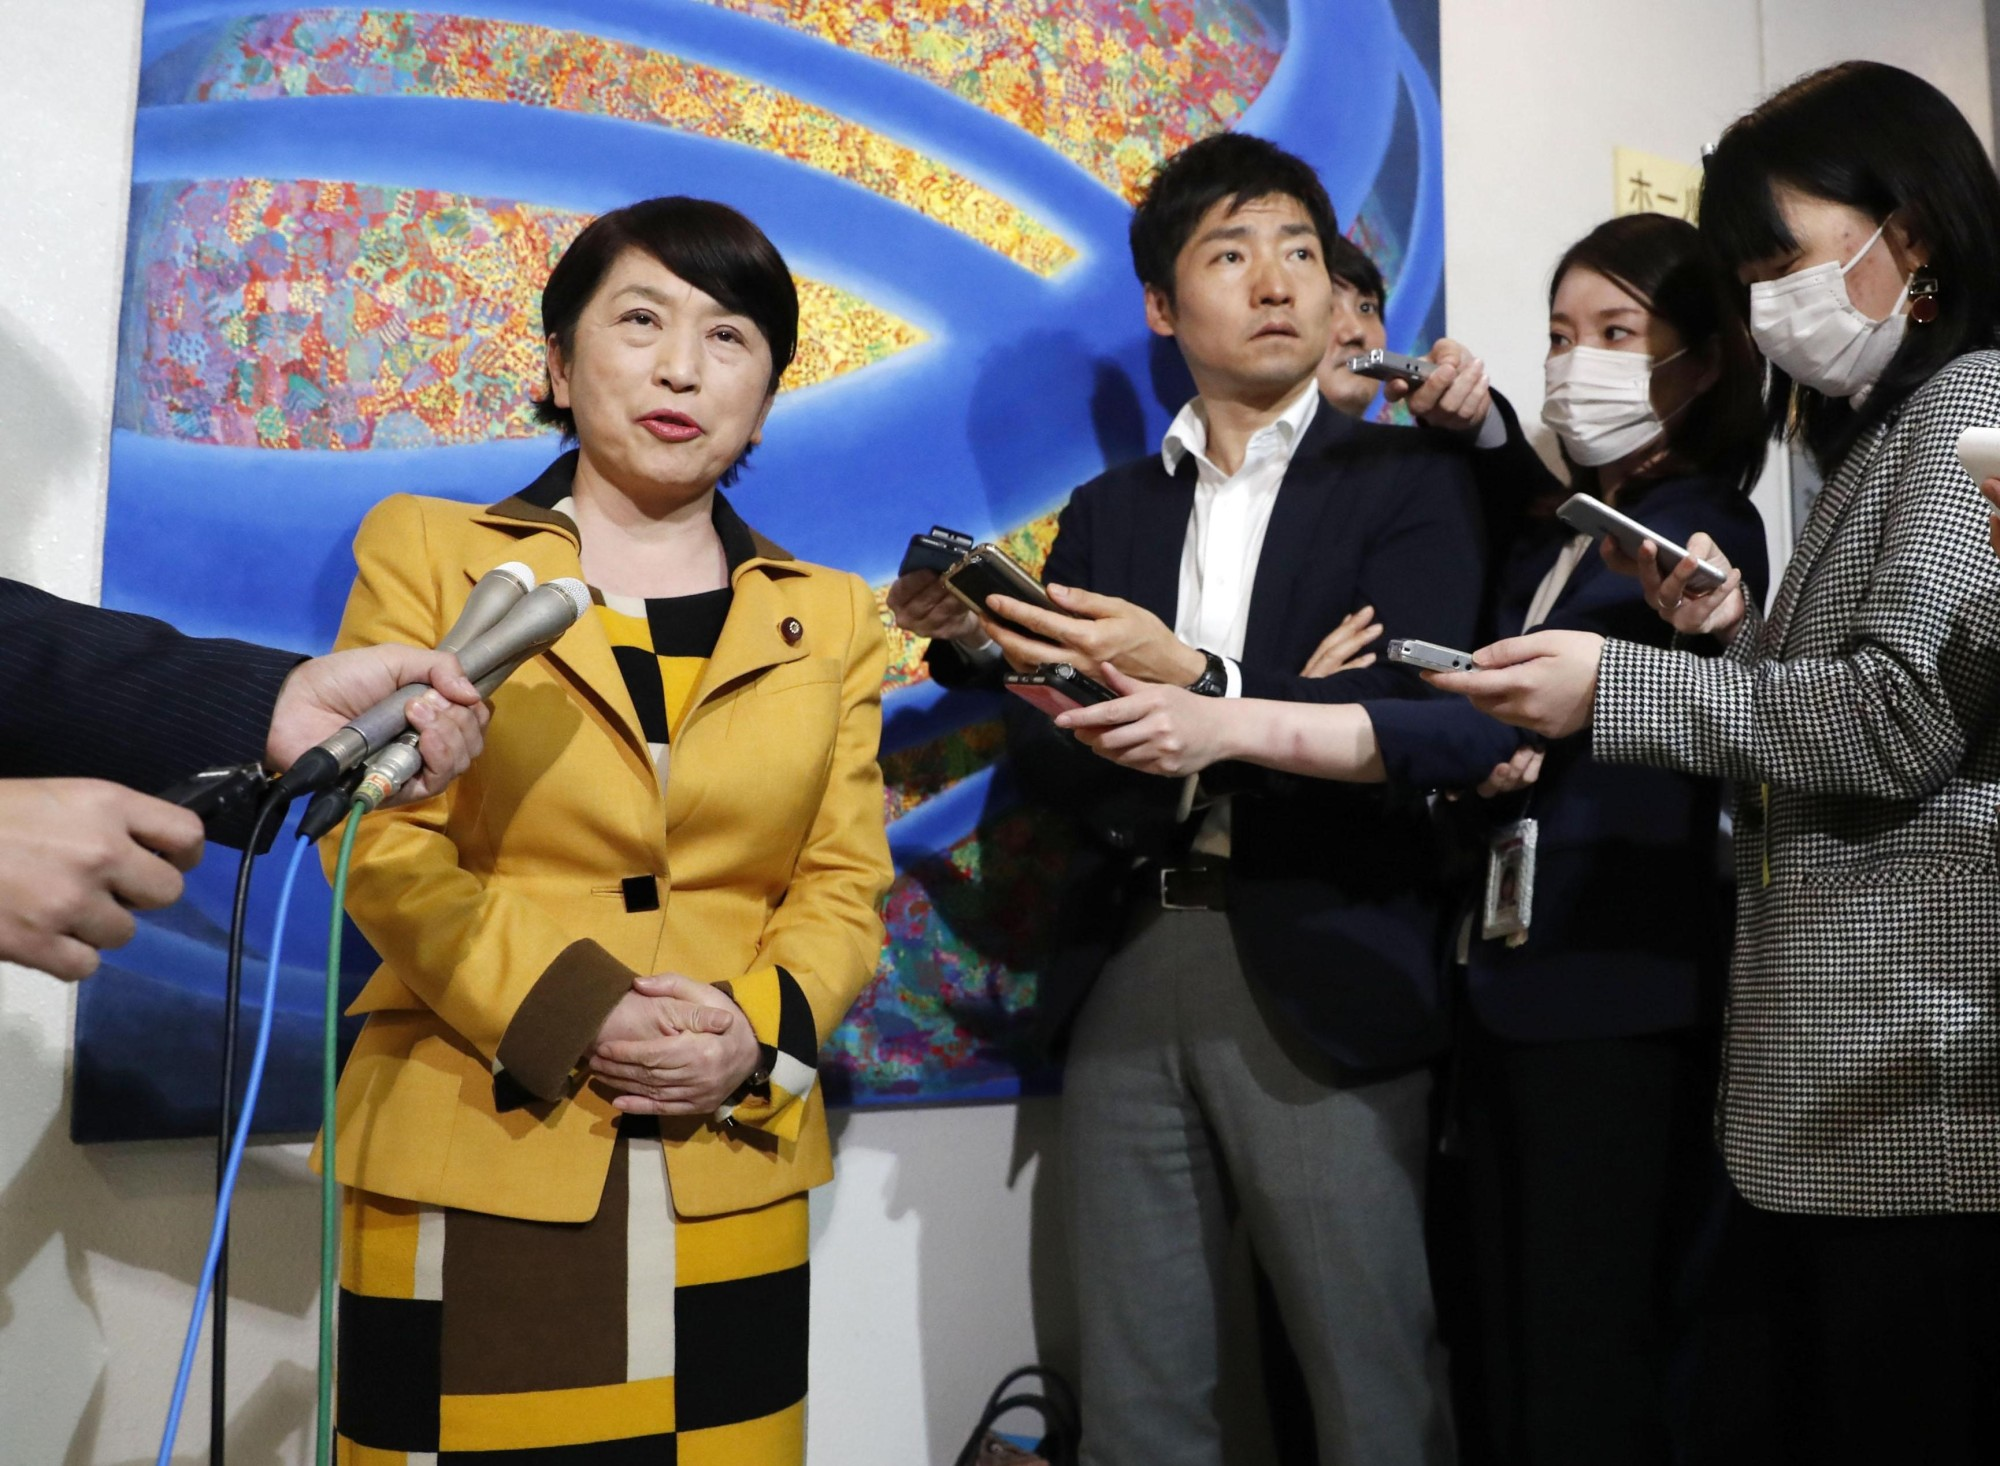 Newly elected Social Democratic Party chief Mizuho Fukushima speaks to reporters on Saturday after she was reelected to the party's top position. She previously led the party from 2003 to 2013. | KYODO